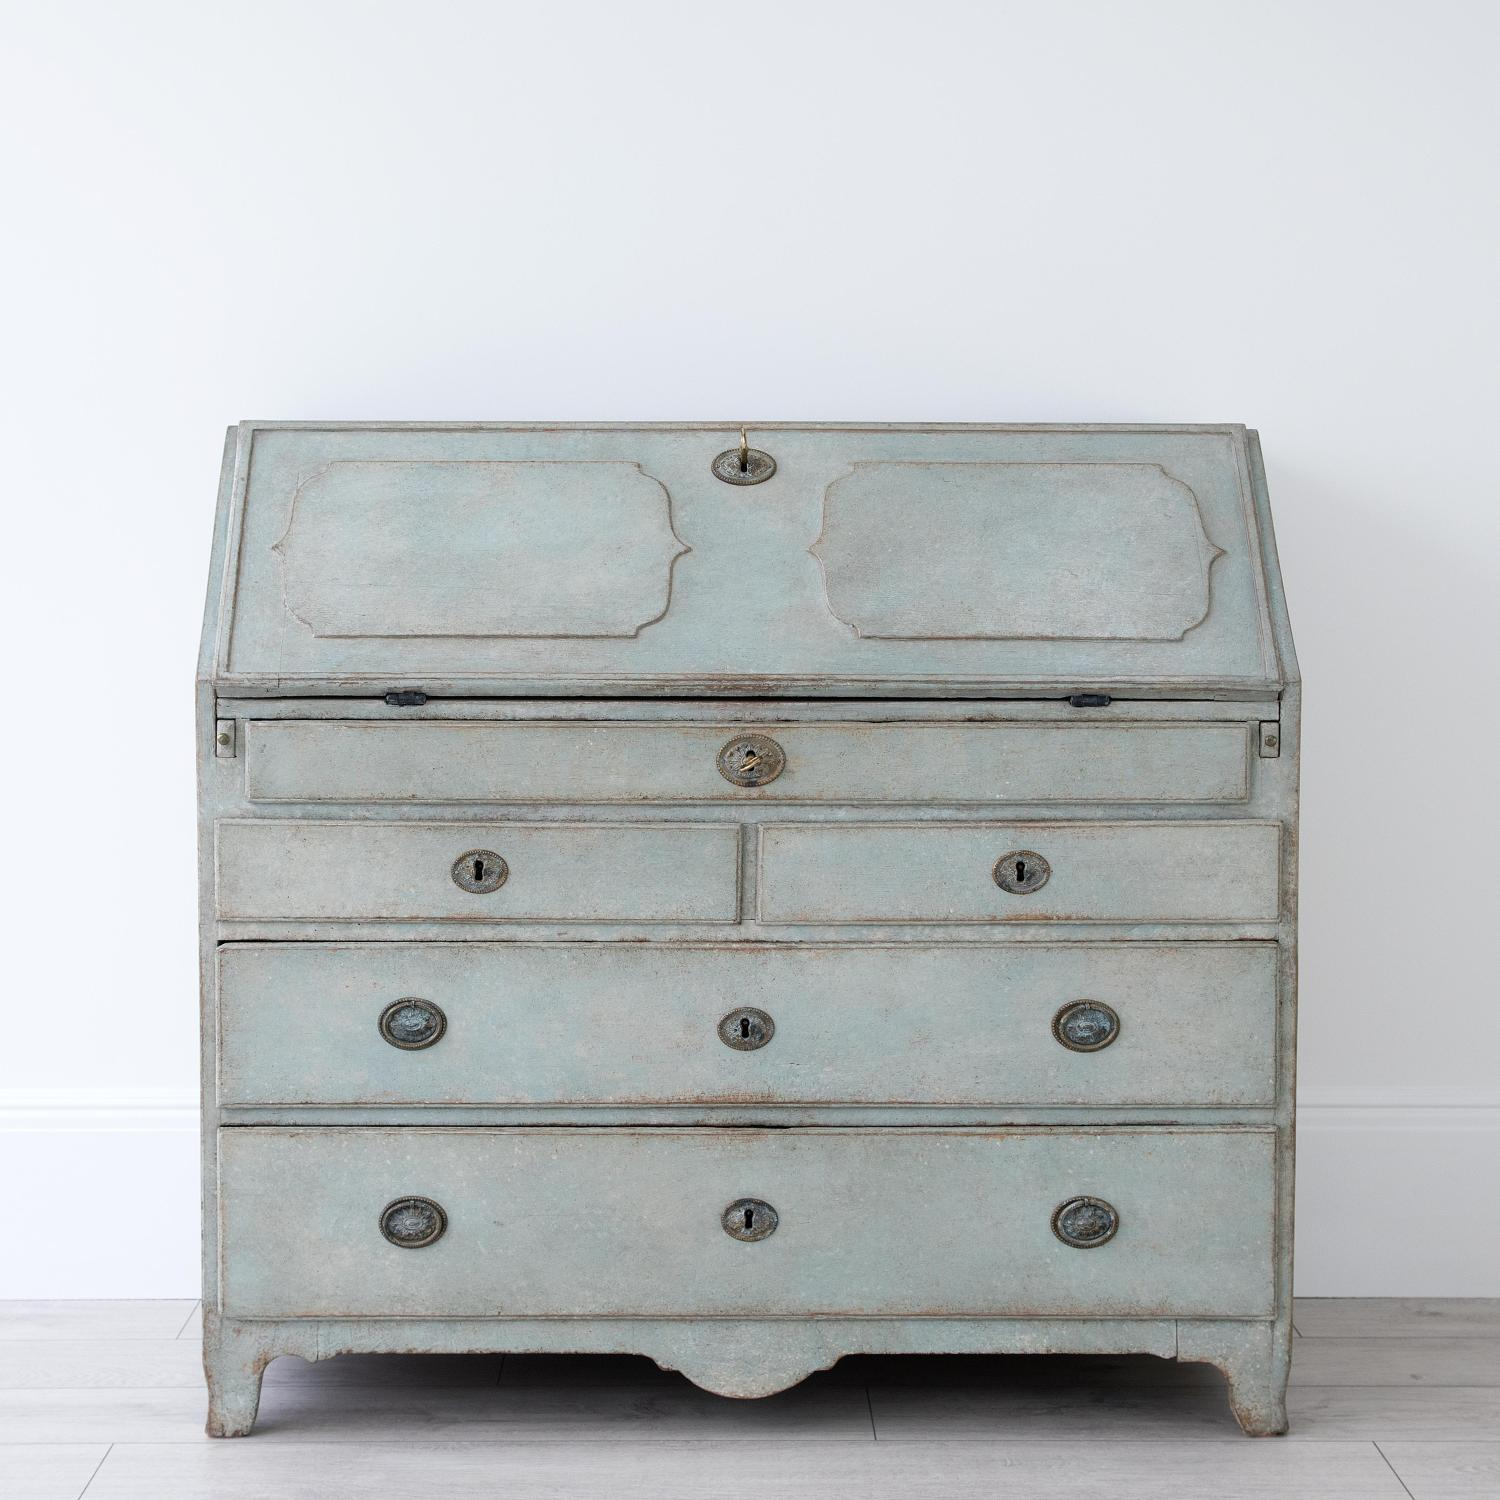 WONDERFUL EARLY 19TH CENTURY GUSTAVIAN BUREAU